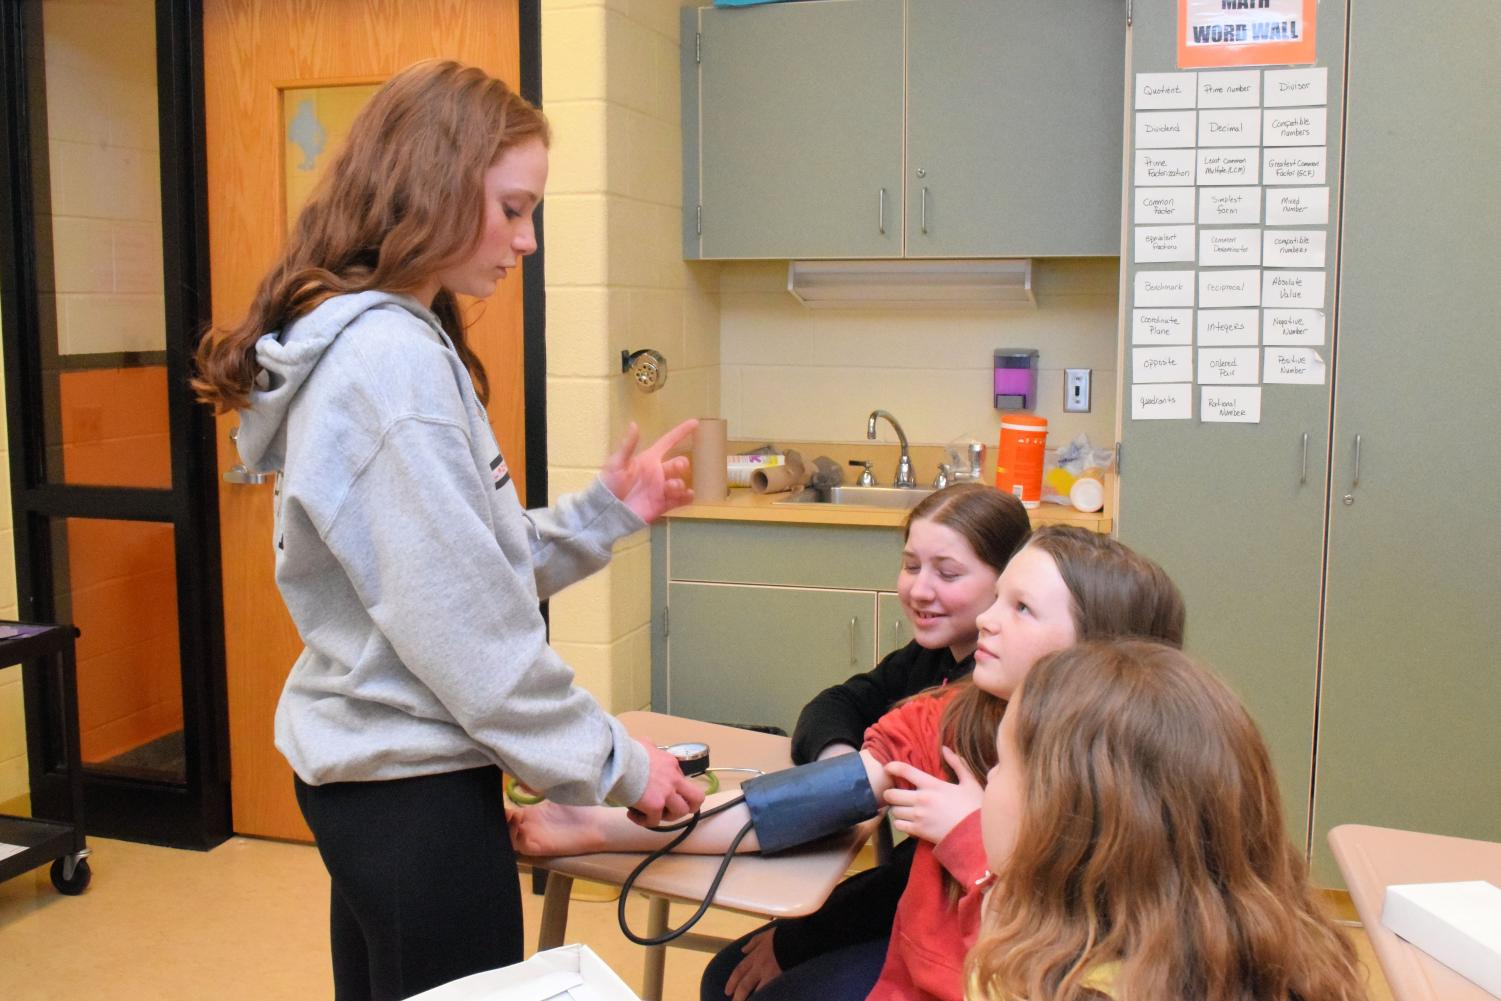 Sophomore+Ella+Pearson+works+with+sixth+graders+Alexis+Boozer%2C+Kendra+Sweeney%2C+and+Lily+Eckley%2C+explaining+how+the+blood+pressure+cuff+and+stethoscope+work.%0A